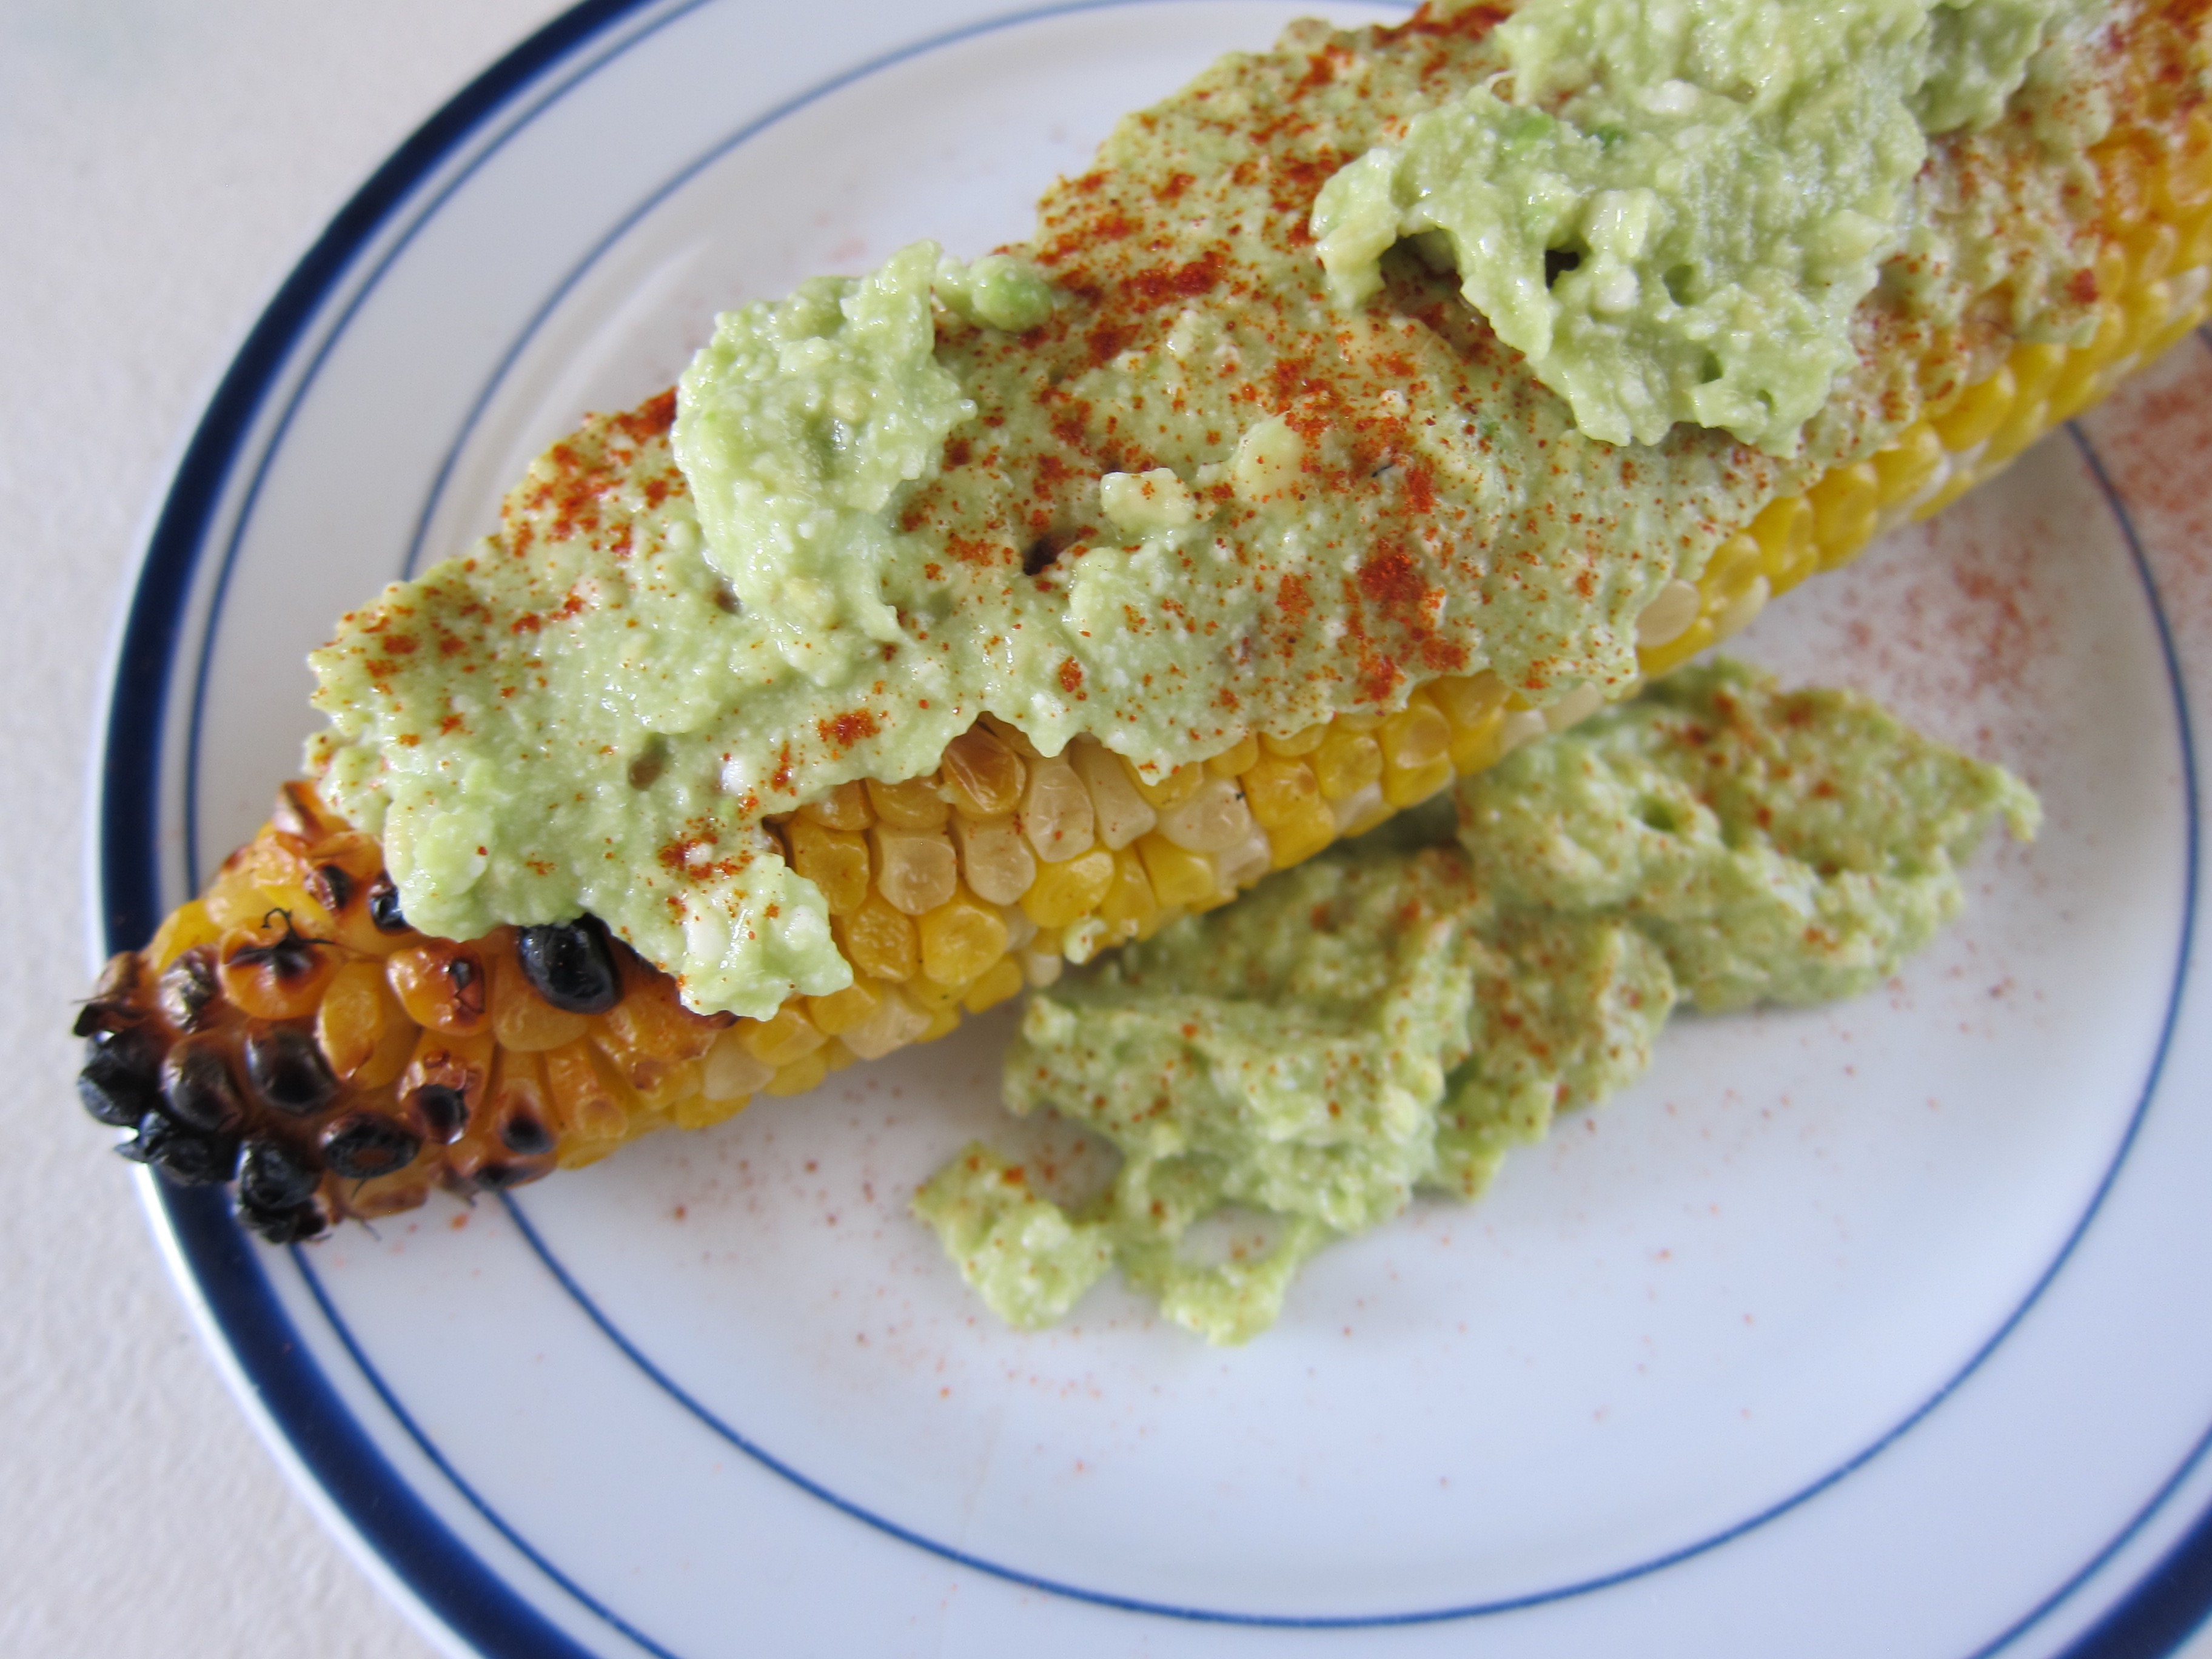 Our spread made with avocado, queso fresco, and fresh lime is a perfect spread for grilled corn on the cob.